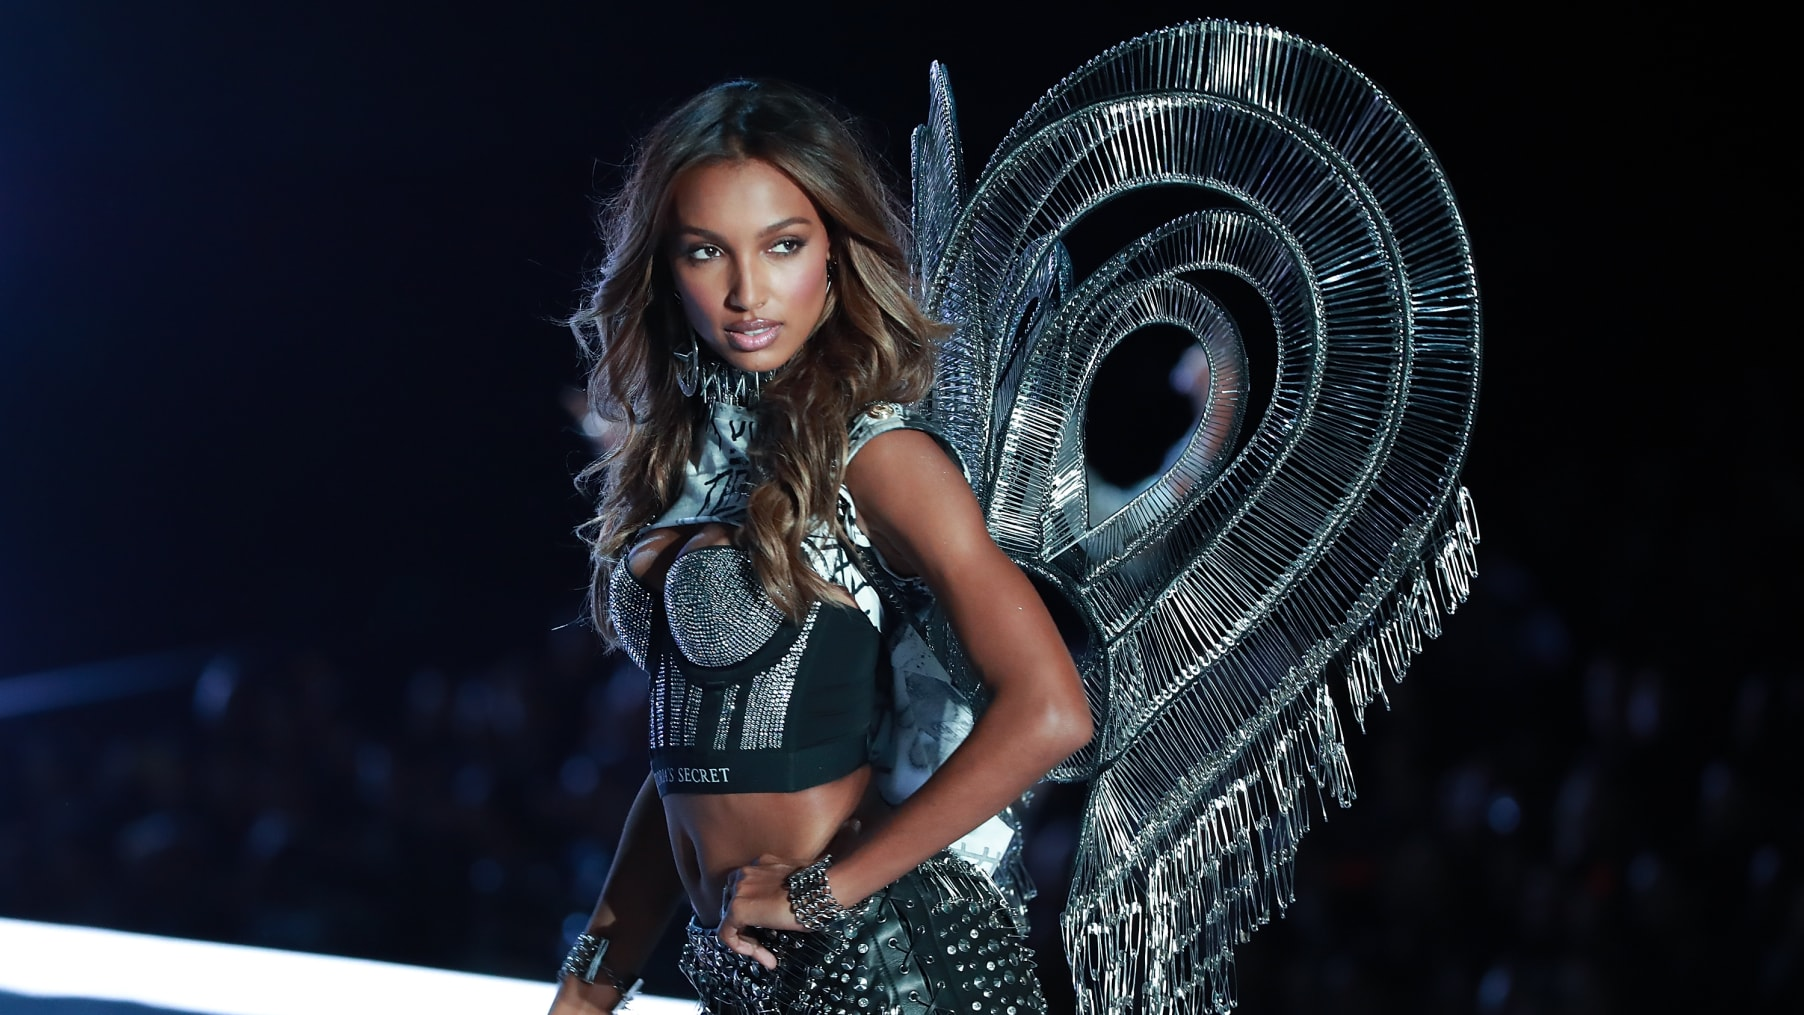 Victoria's Secret Fashion Show: Where are the plus-size models? - CNN Style